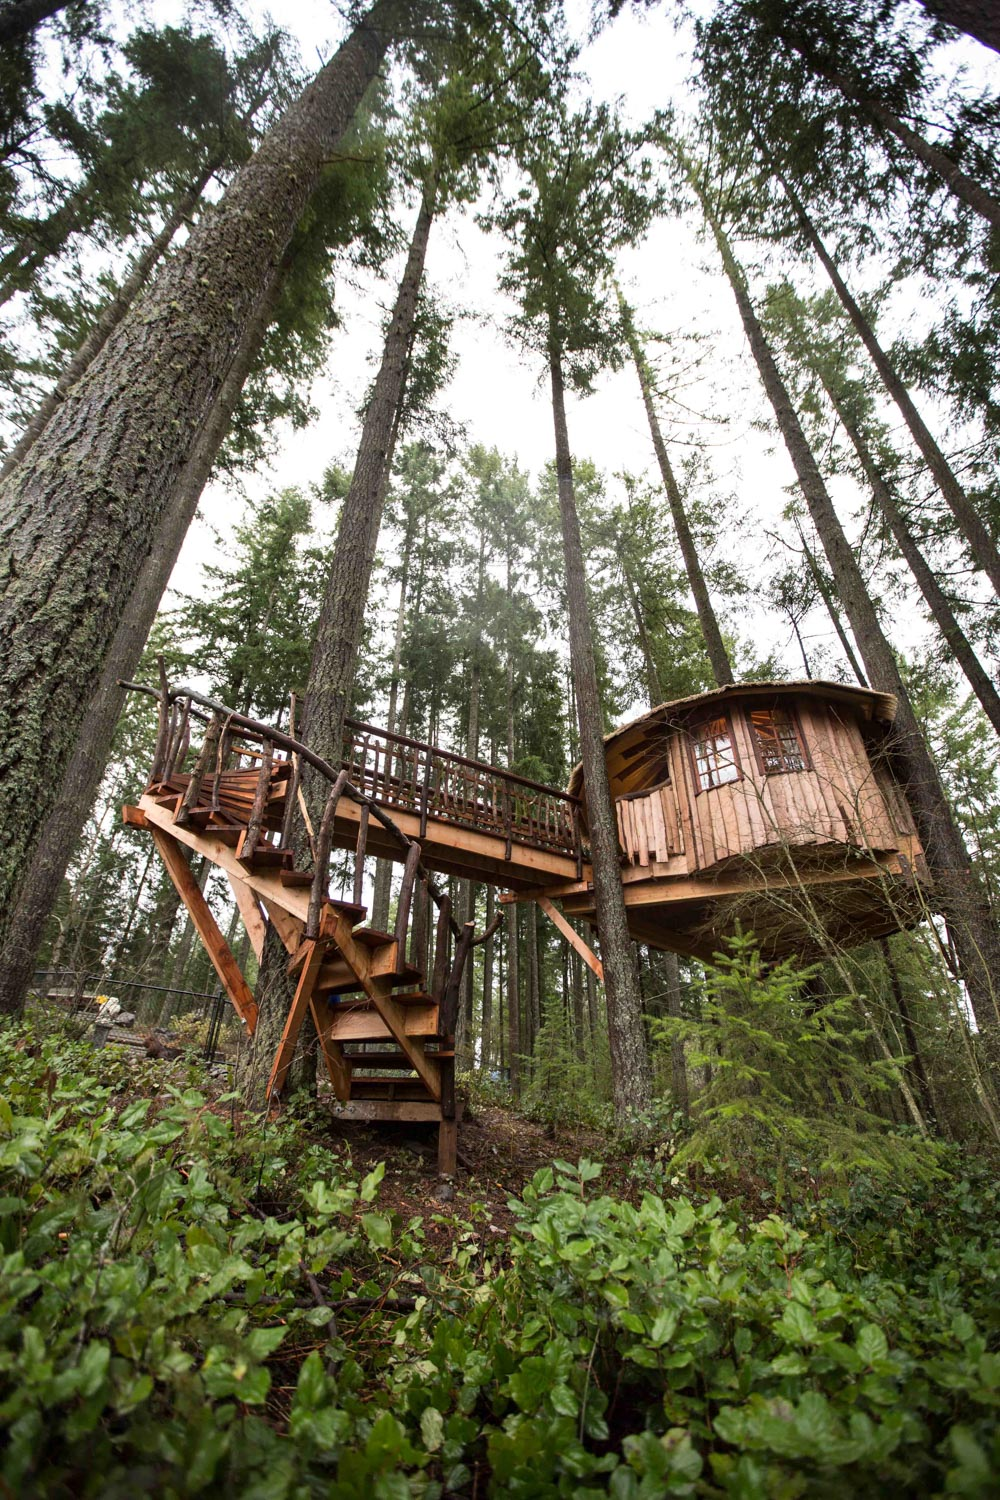 Safari Hut Treehouse